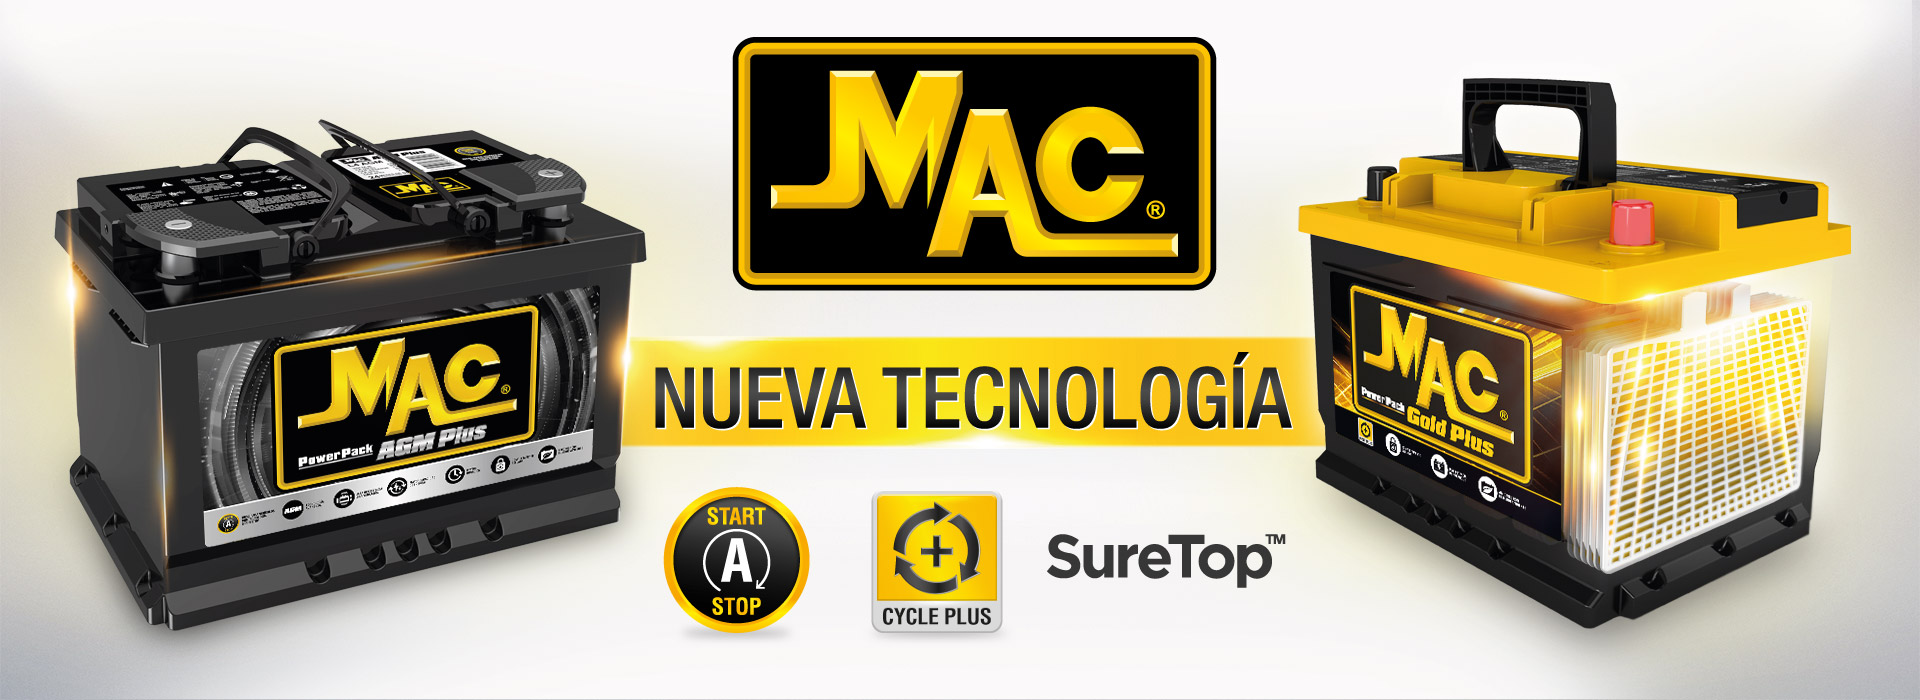 MAC Gold Plus Dates - nueva technologia